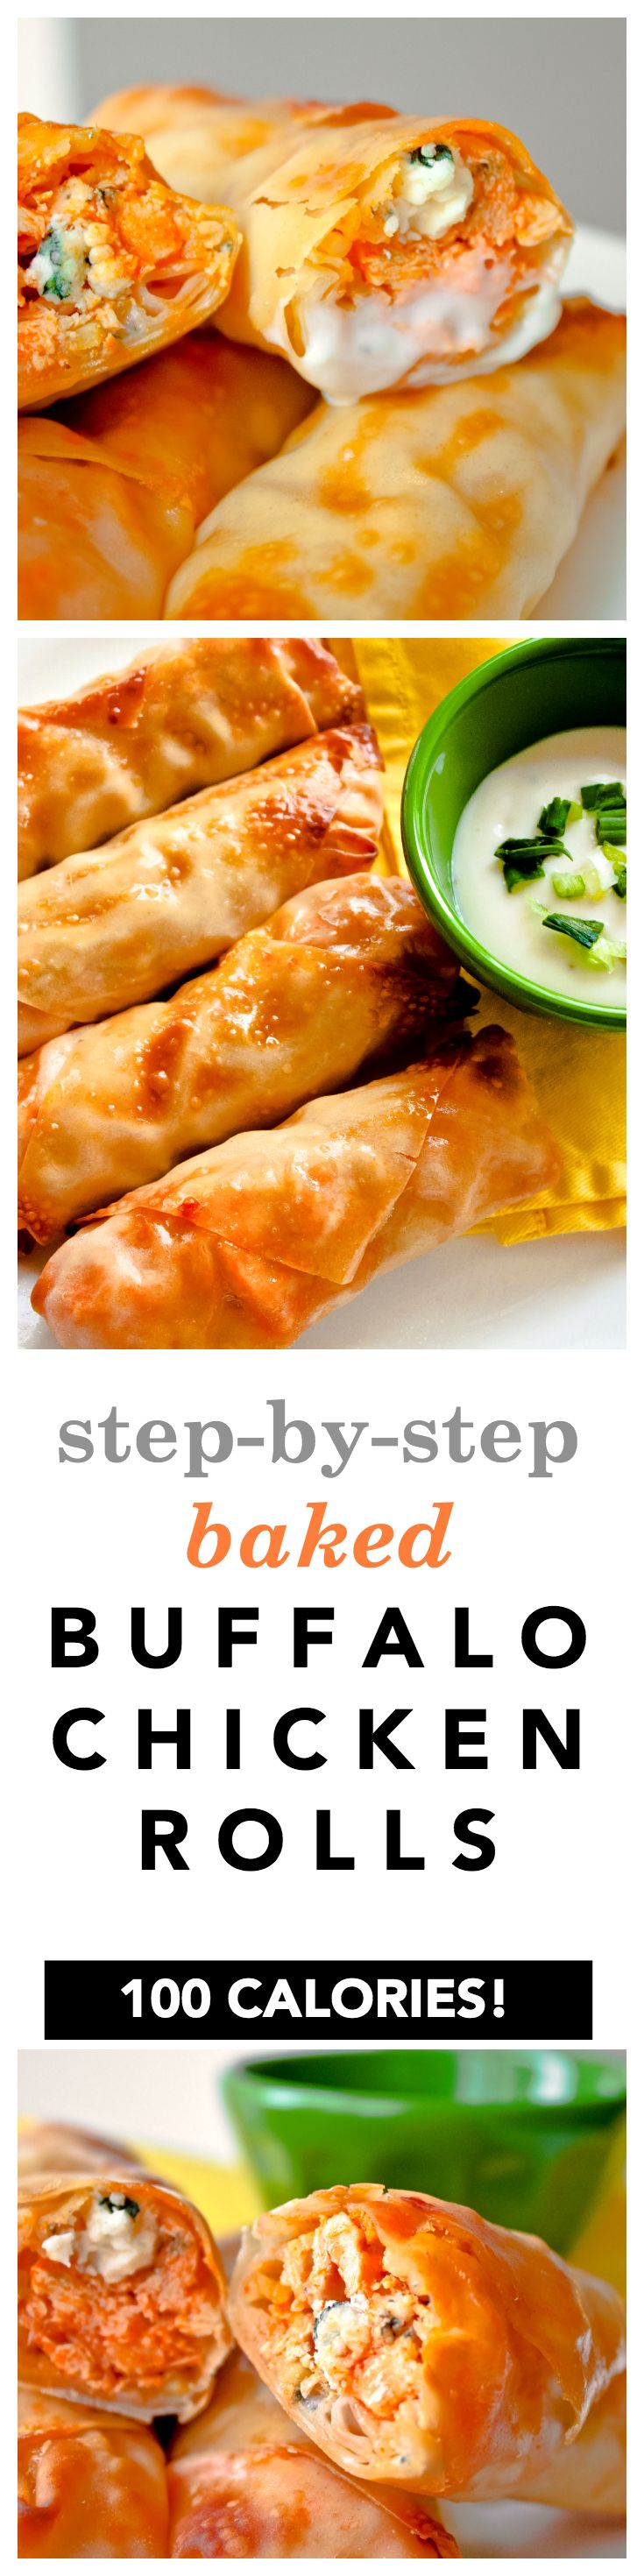 Baked Buffalo Chicken Egg Rolls Recipe! Here's the easy step by step guide showing you how to make healthy buffalo chicken rolls with egg roll wrappers, blue cheese, hot sauce, and broccoli slaw! Perfect as an appetizer but they also work as a main meal, too! 103 calories per roll